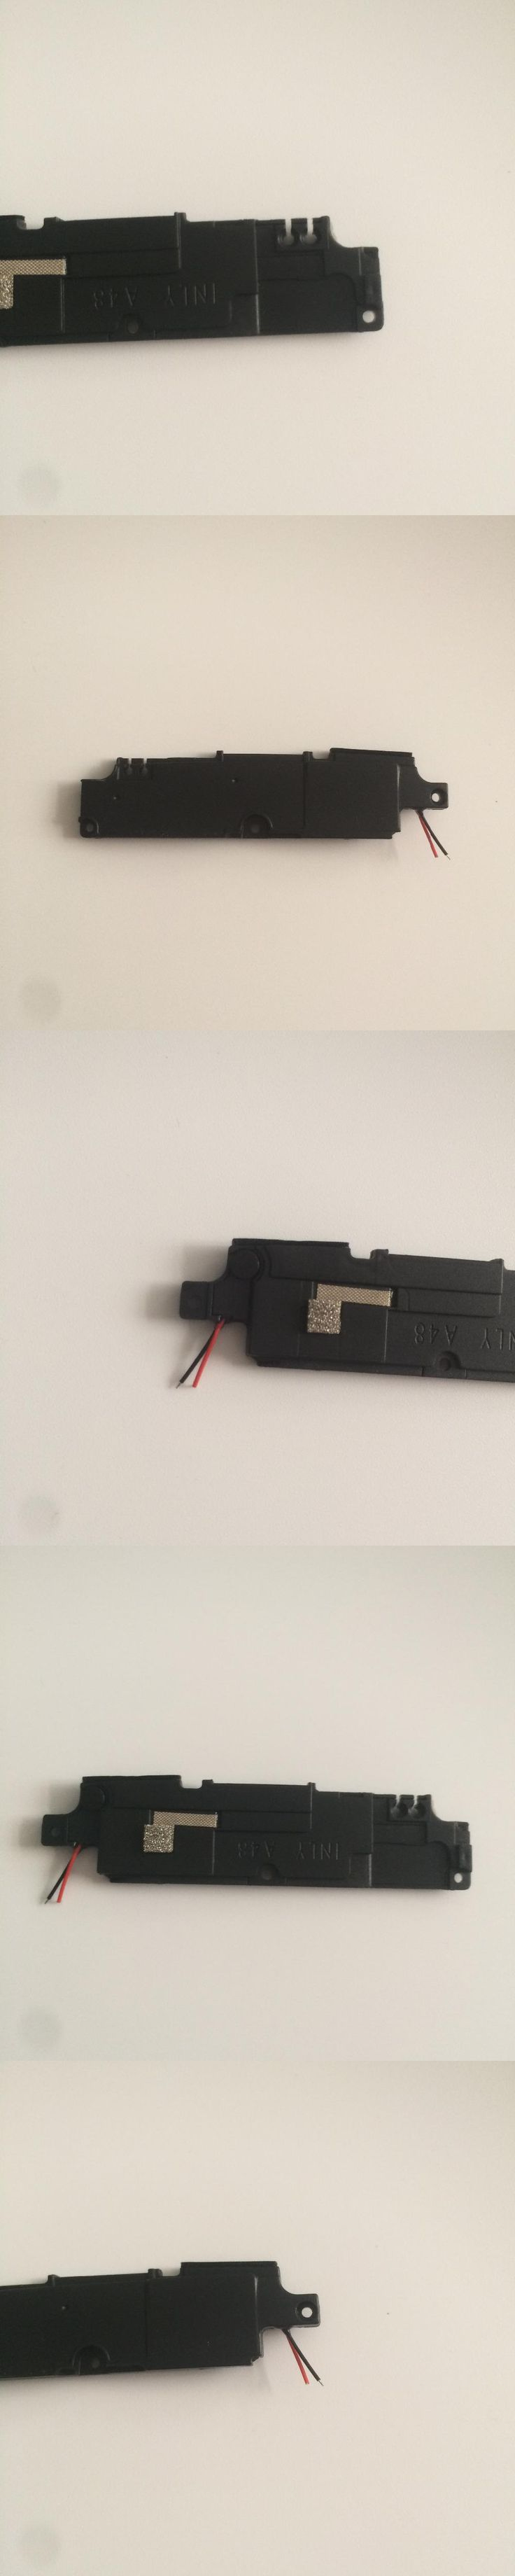 Replacement Parts  Loud Speaker Buzzer Ringer For DOOGEE X5 Max phone Freeshipping+Tracking number